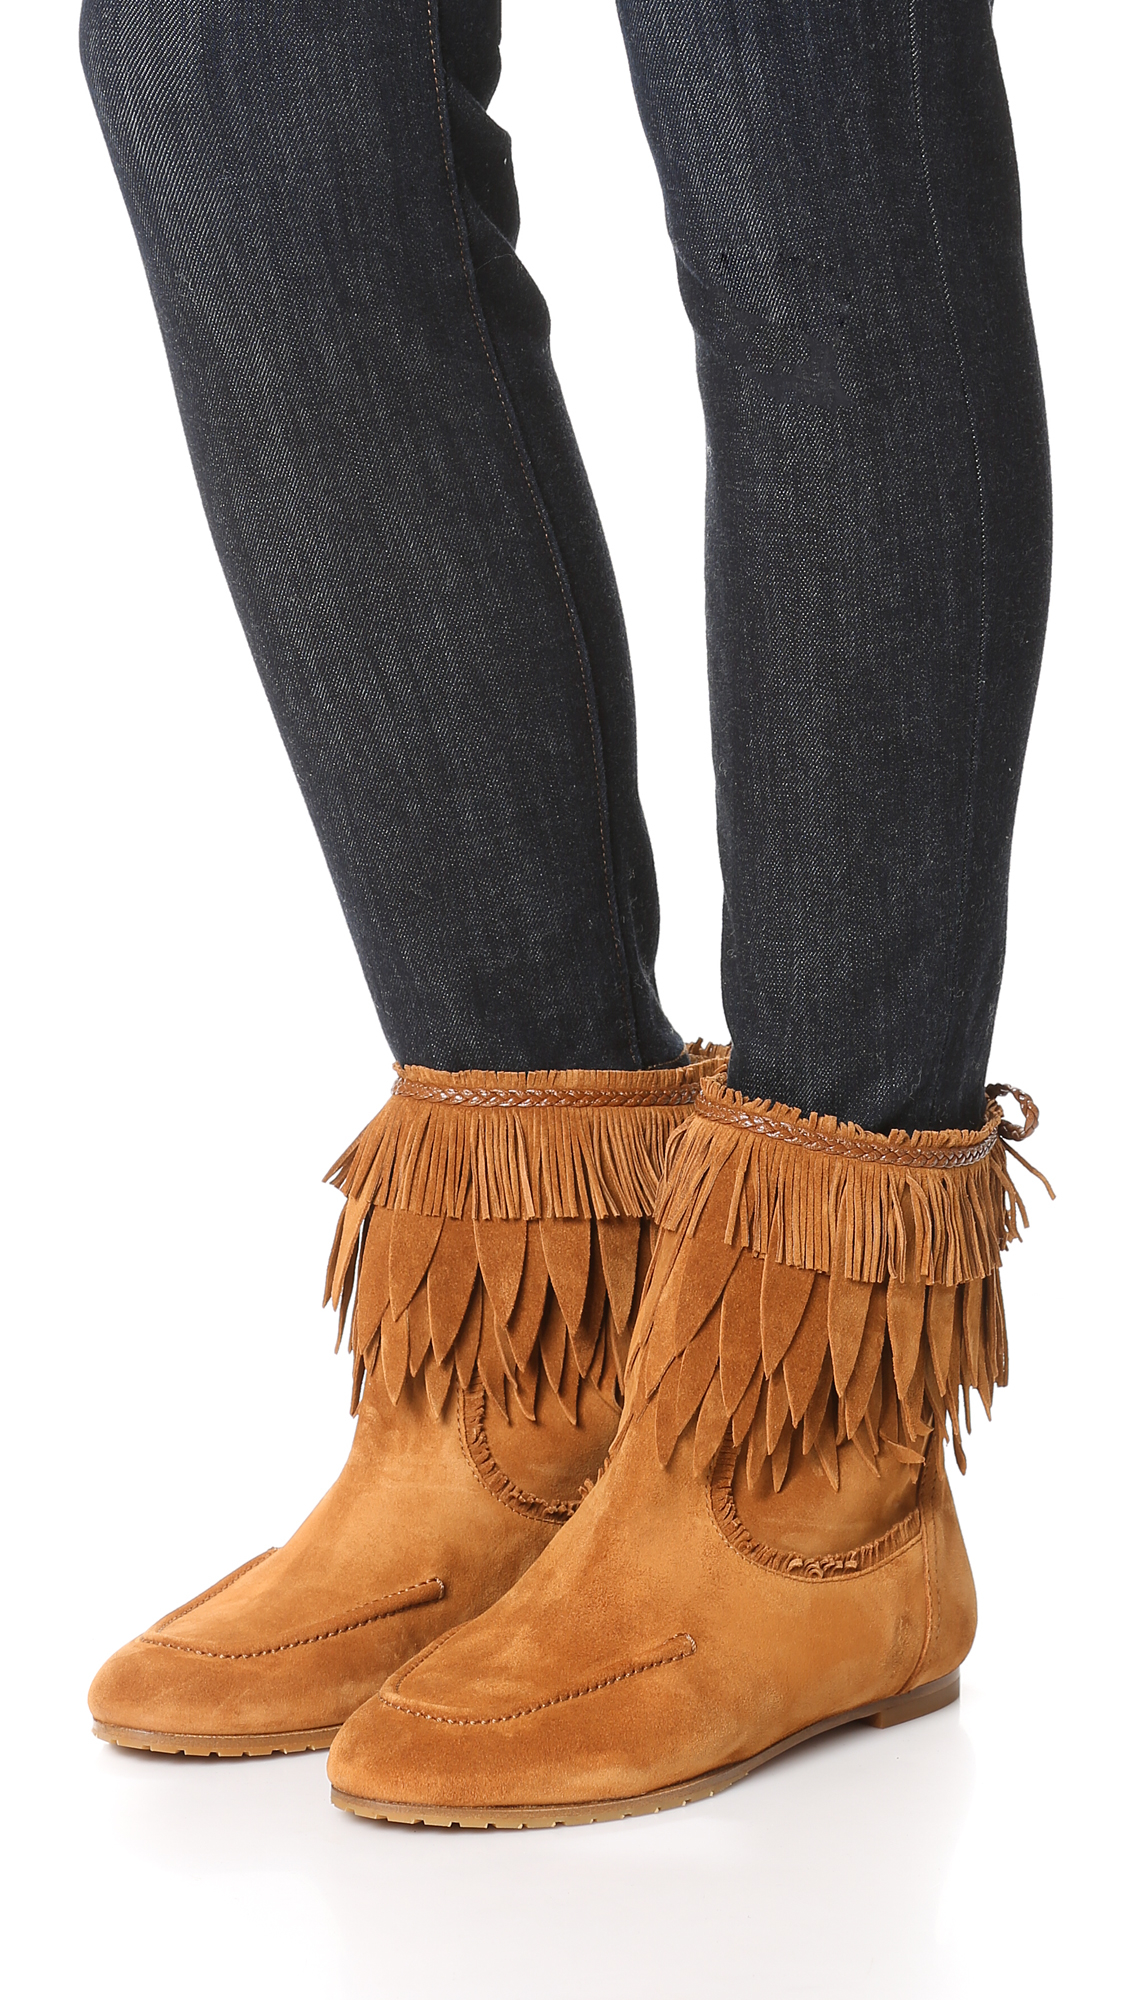 Aquazzura Tiger Lily Fringe Suede Bootie in Cognac (Brown)